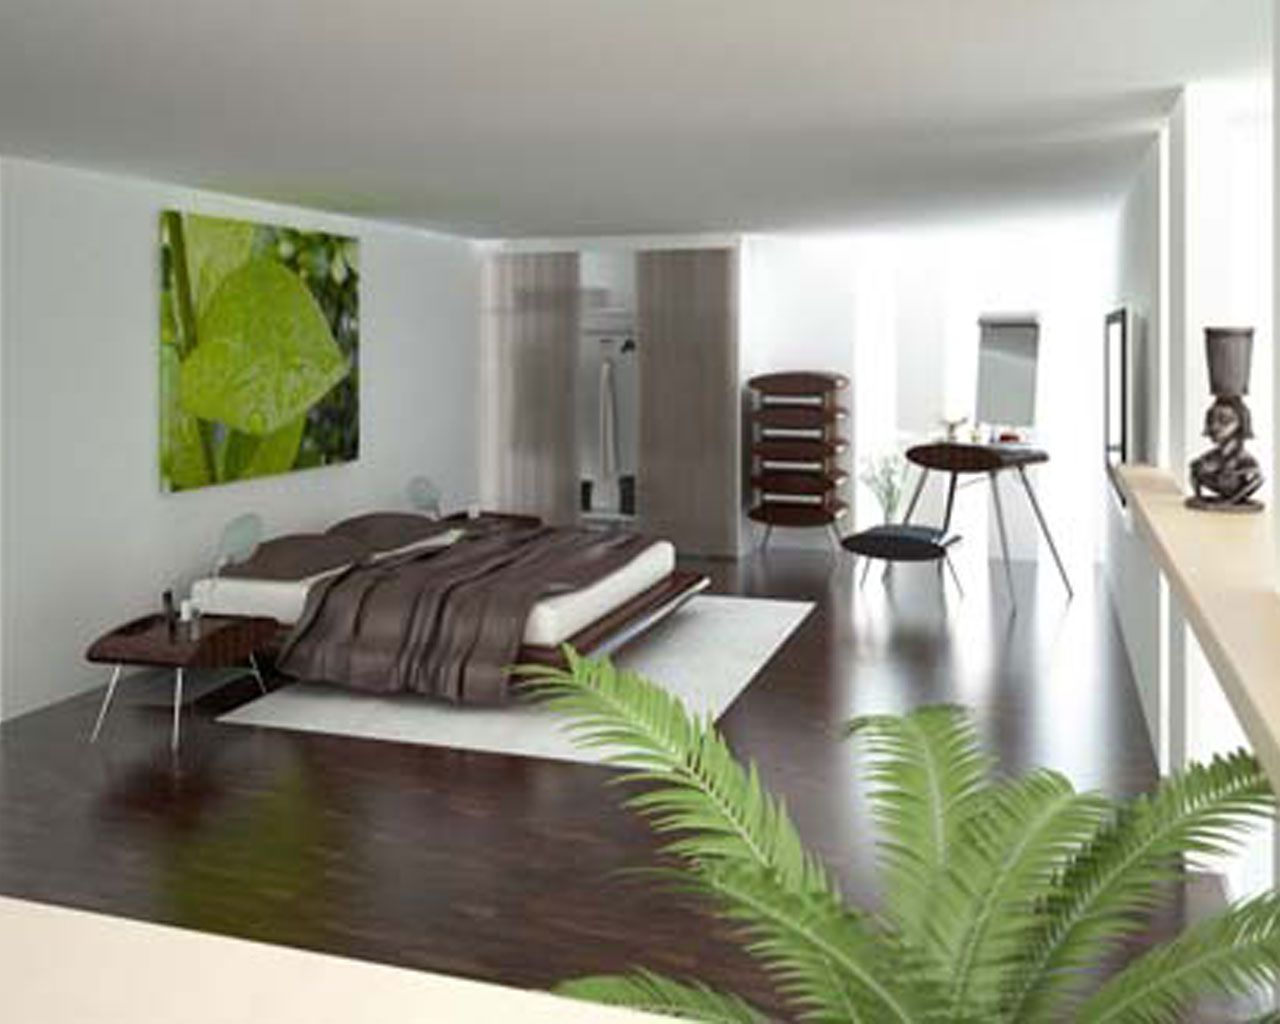 green bedroom ideas | Green-in-Modern-Bedroom-Design-wallpaper - Hot on men's bathroom, men's bedroom paint, men's bedroom bedding, men's master bedroom, men's bedroom interior design, men's color, men's beds, romantic prom proposal ideas, man bedroom ideas, men's home office, black and white baby room ideas, men's modern bedroom, masculine bedroom ideas, men's green, men's bedroom sets, men room ideas, 12 year old boys room ideas, small bedroom ideas, men's decor, men's home decorating,